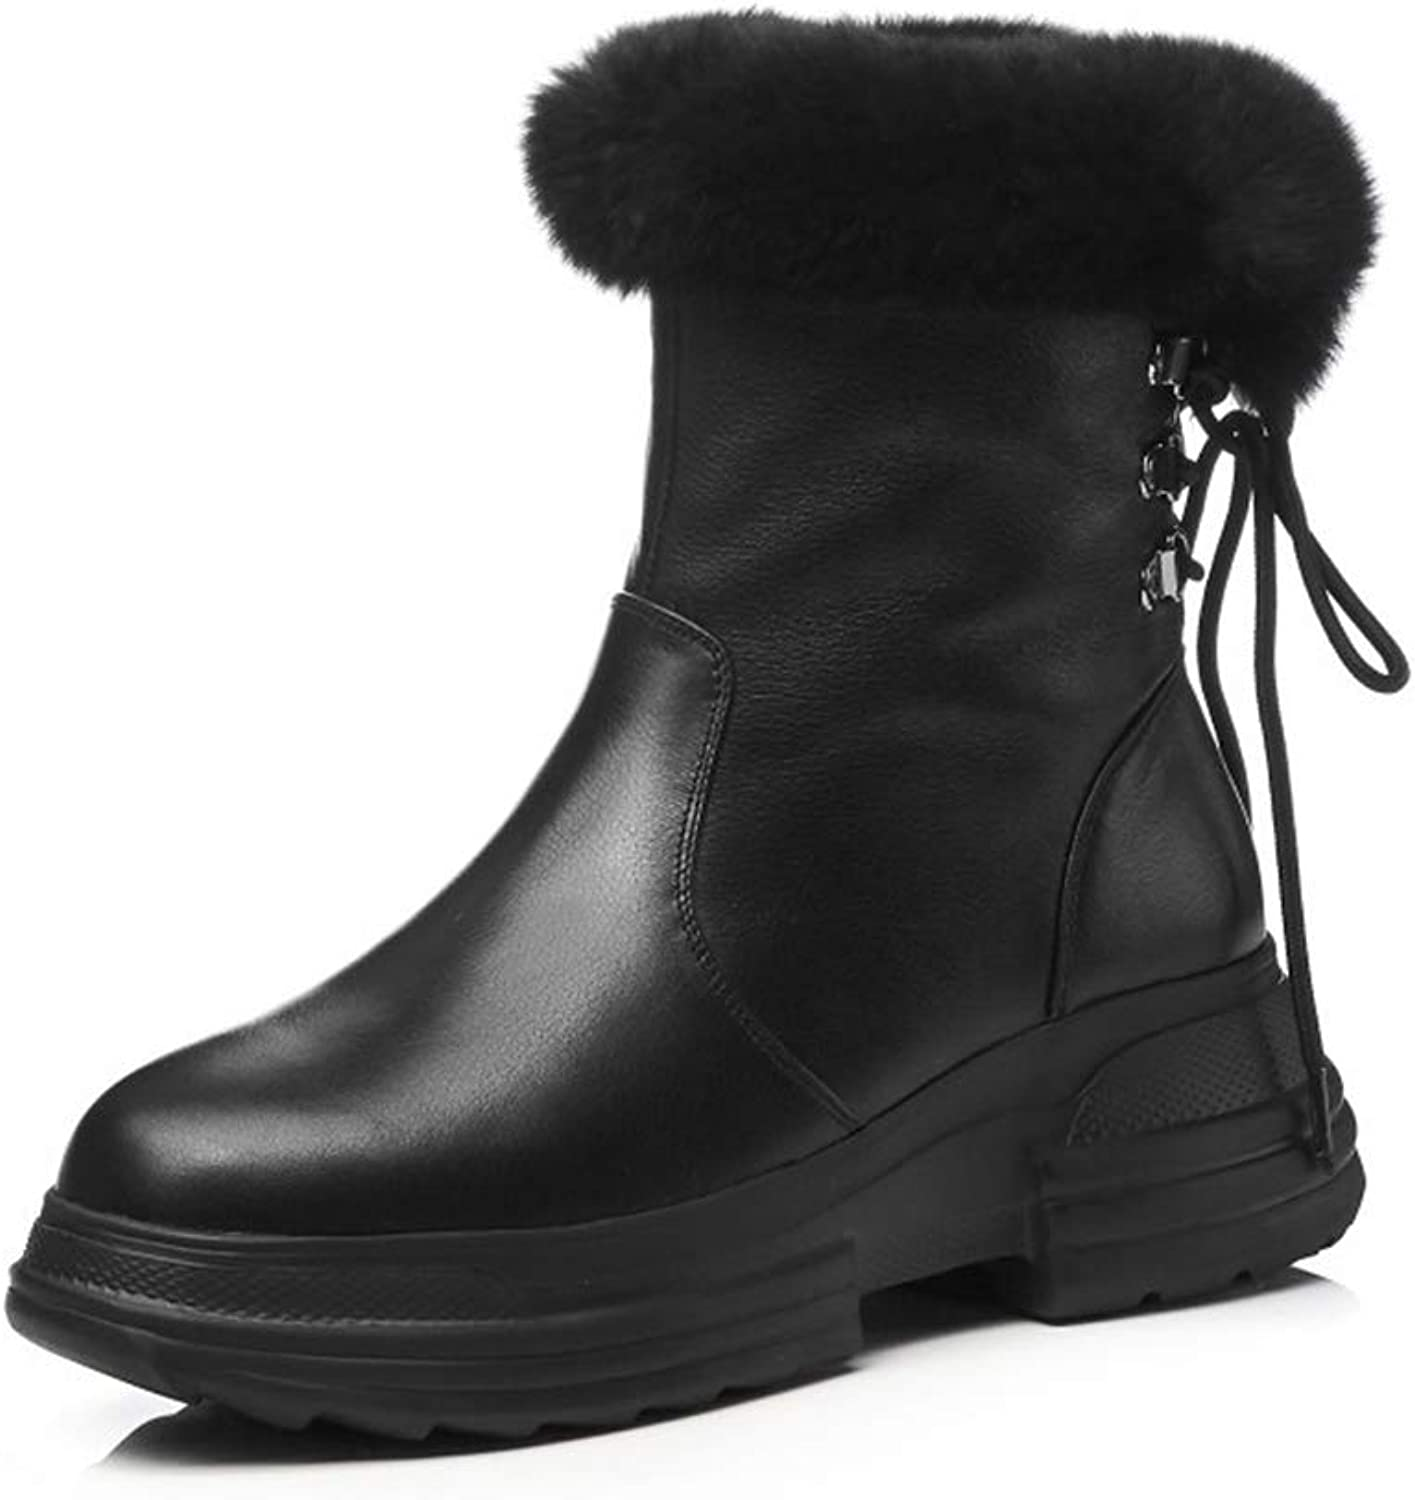 Womens Fashion Boots Winter New Leather Boots Ladies Chunky Block Elegant Heel Lined Ankle Booties Outdoor Snow Boots Vintage shoes (color   Black, Size   38)